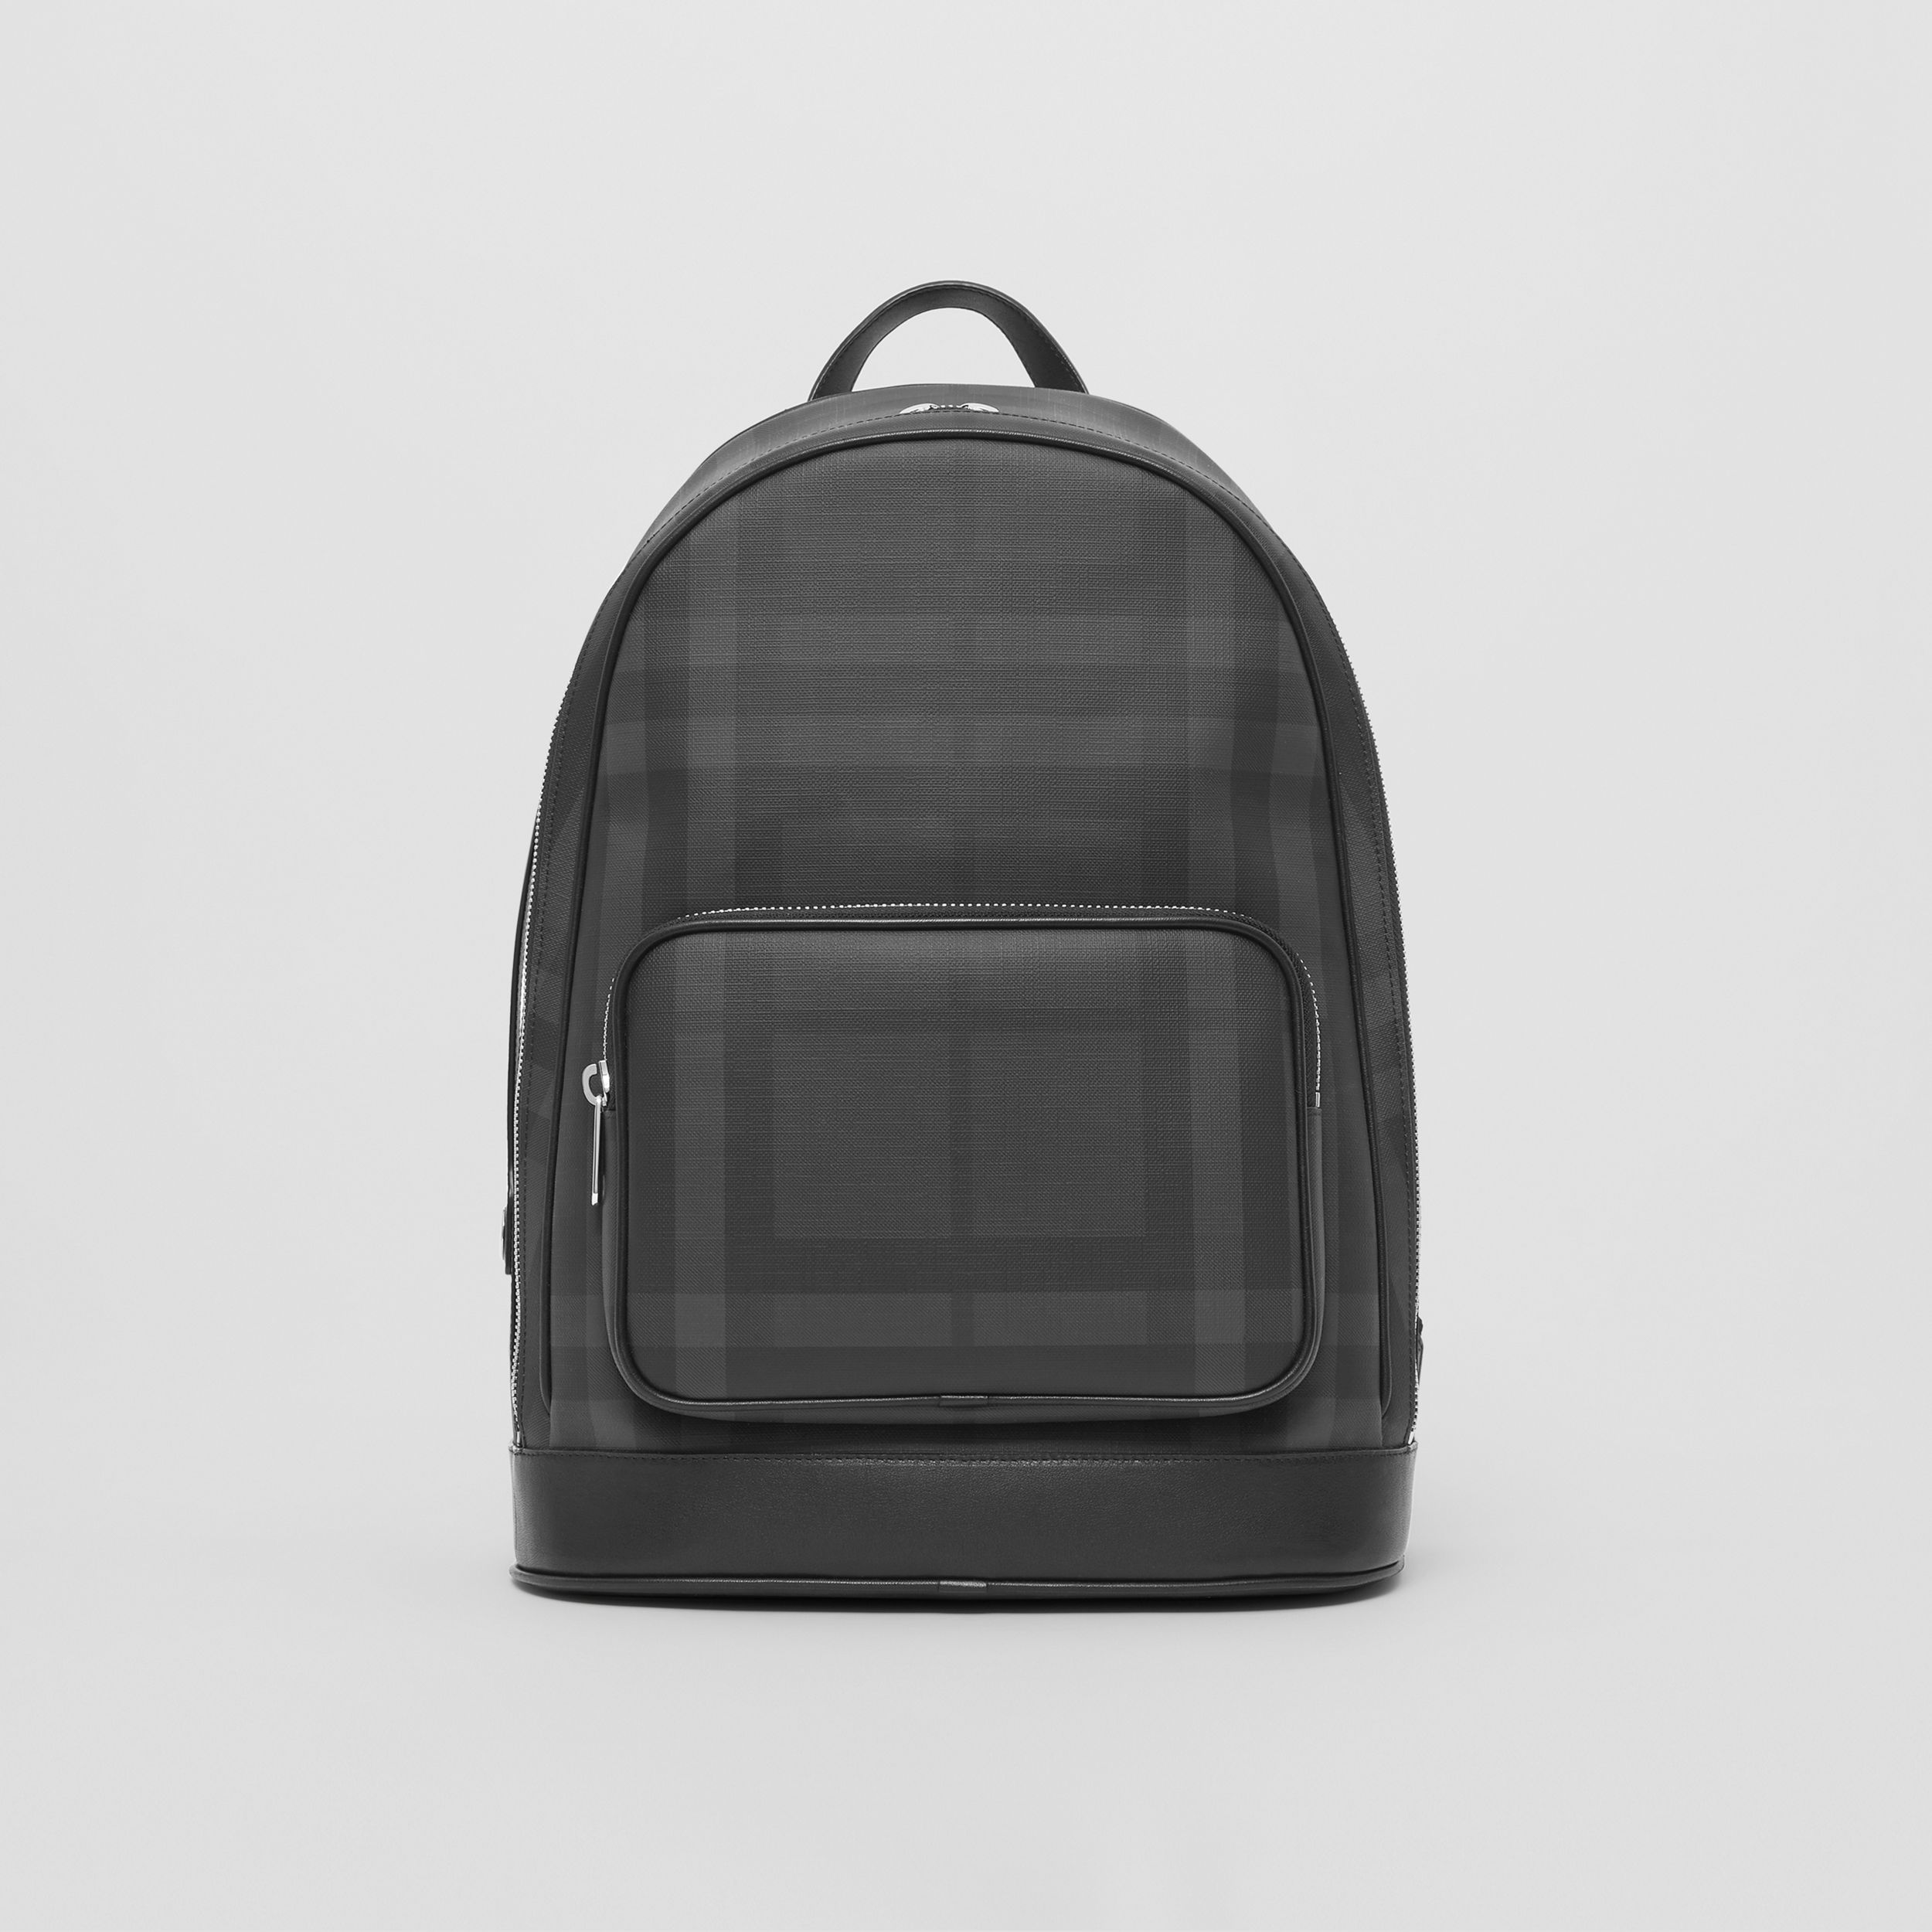 London Check and Leather Backpack in Dark Charcoal - Men | Burberry - 1